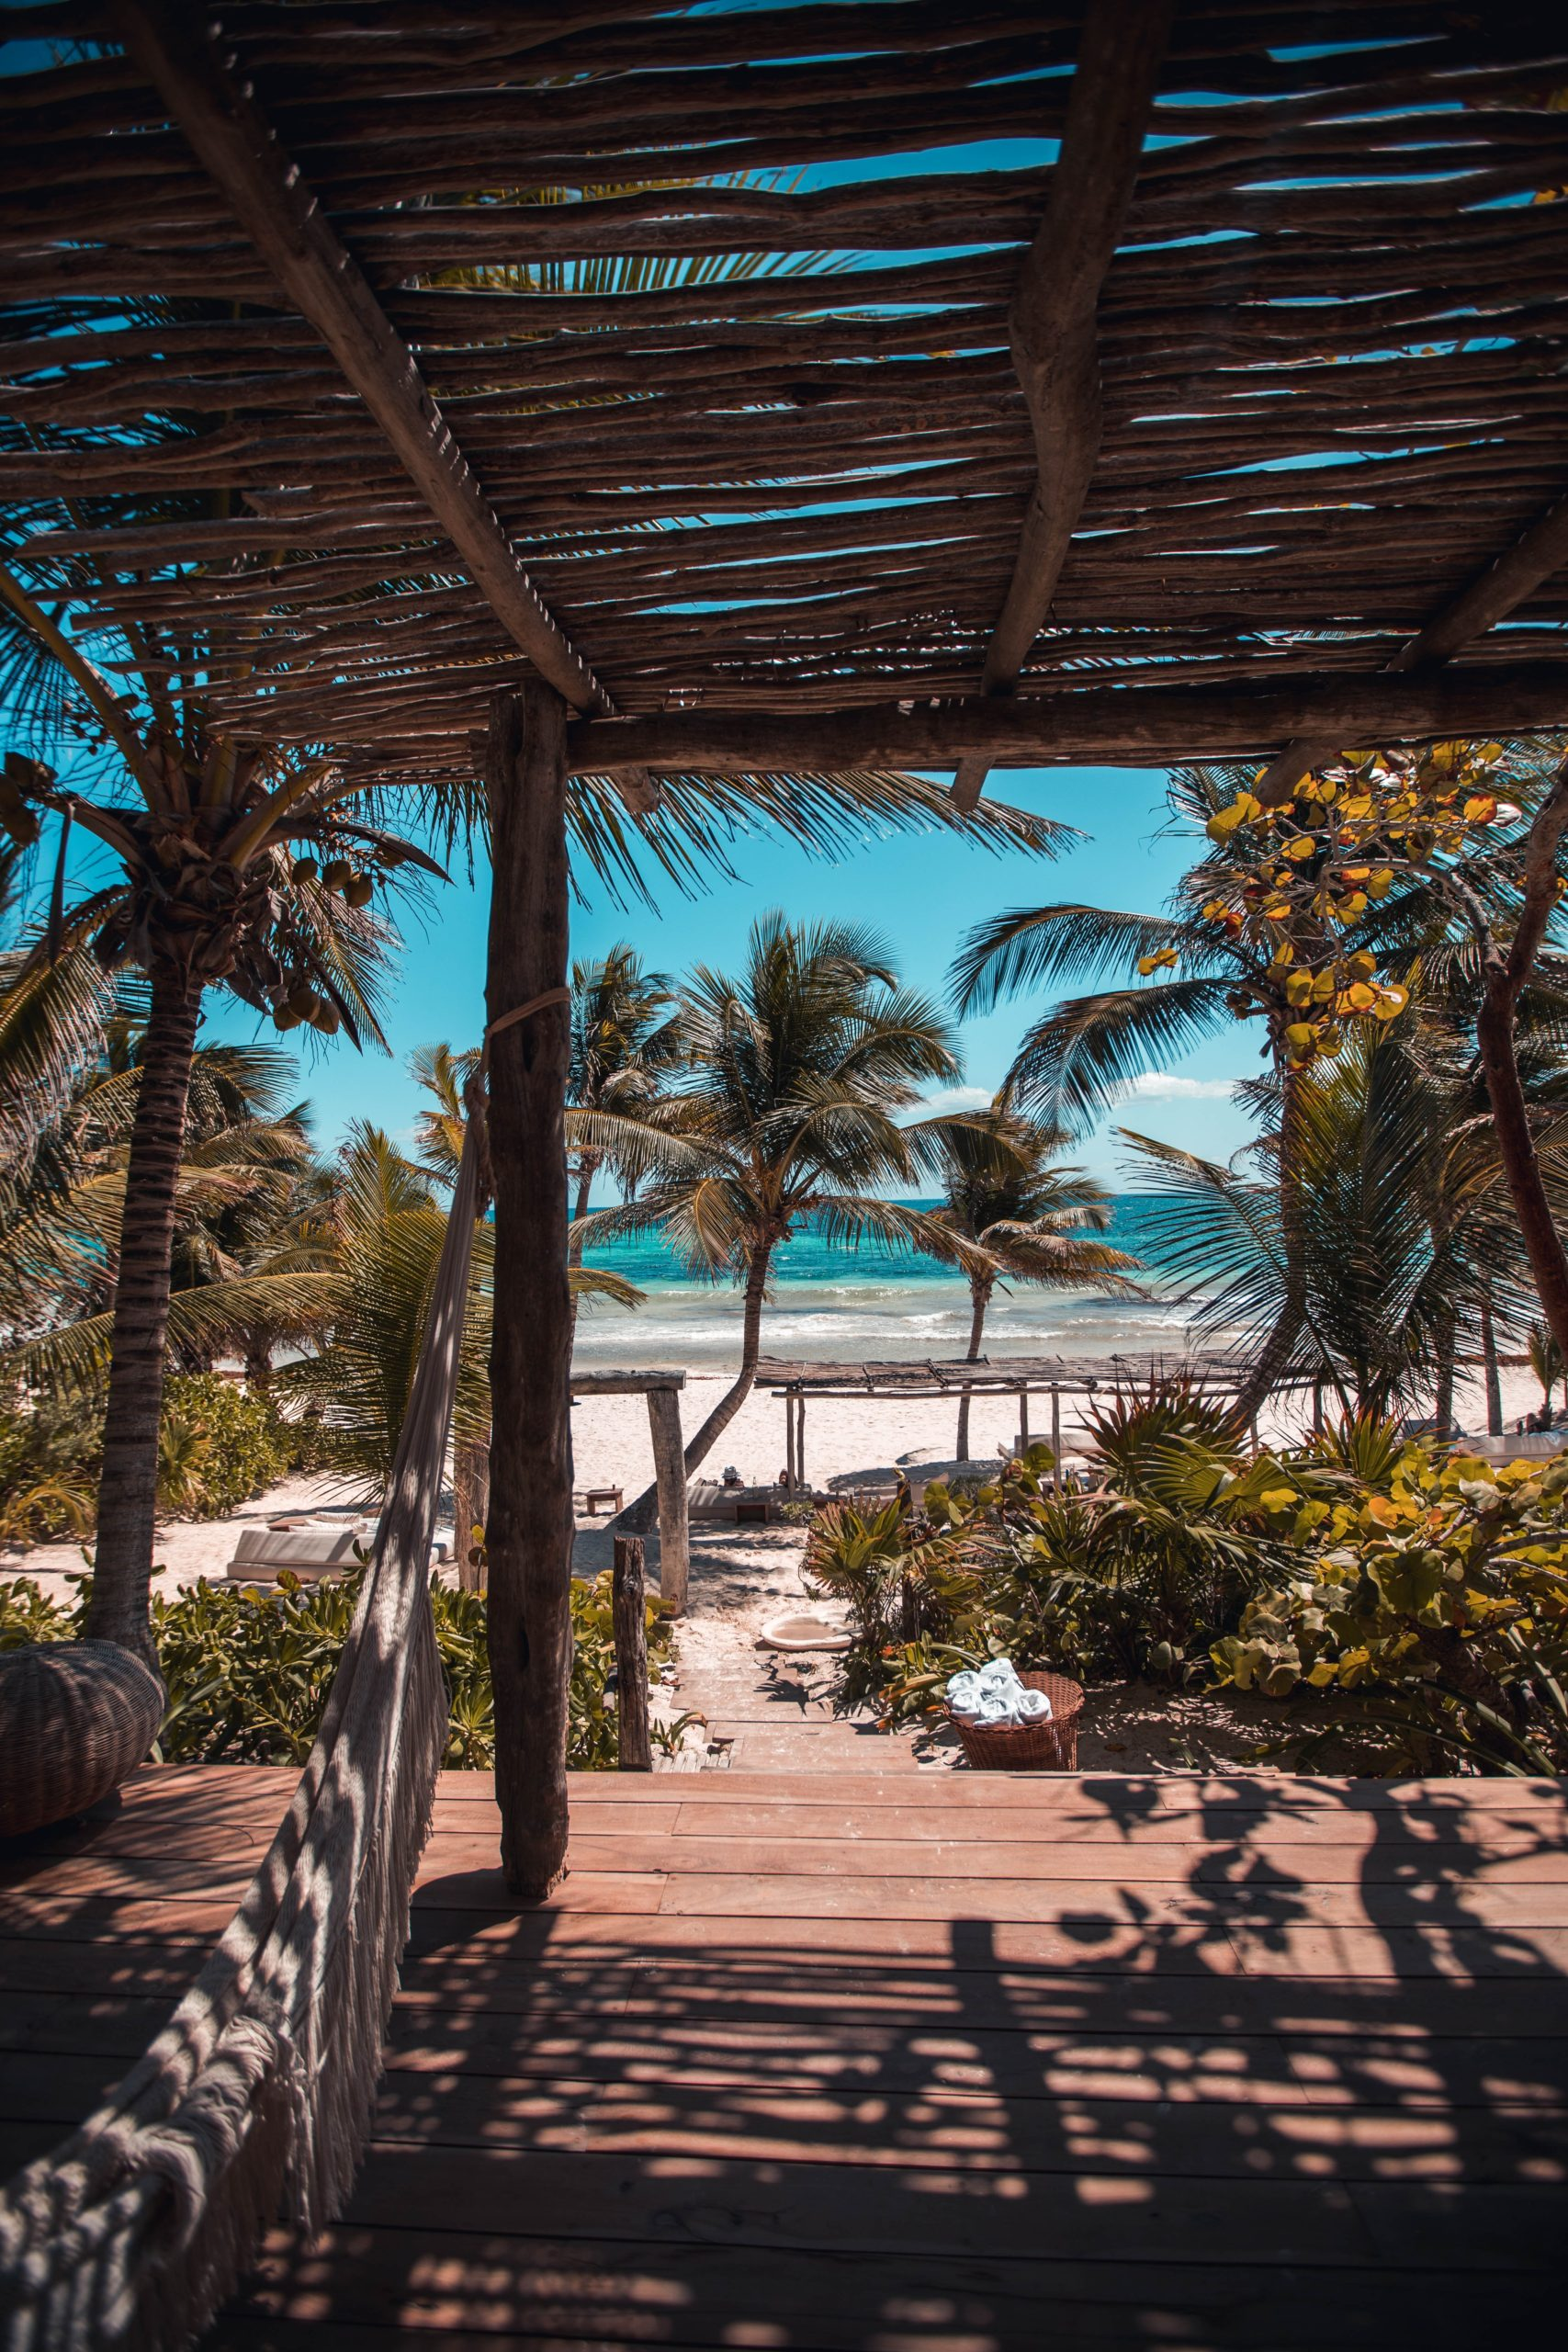 5 tips for a staycation during the global COVID-19 pandemic